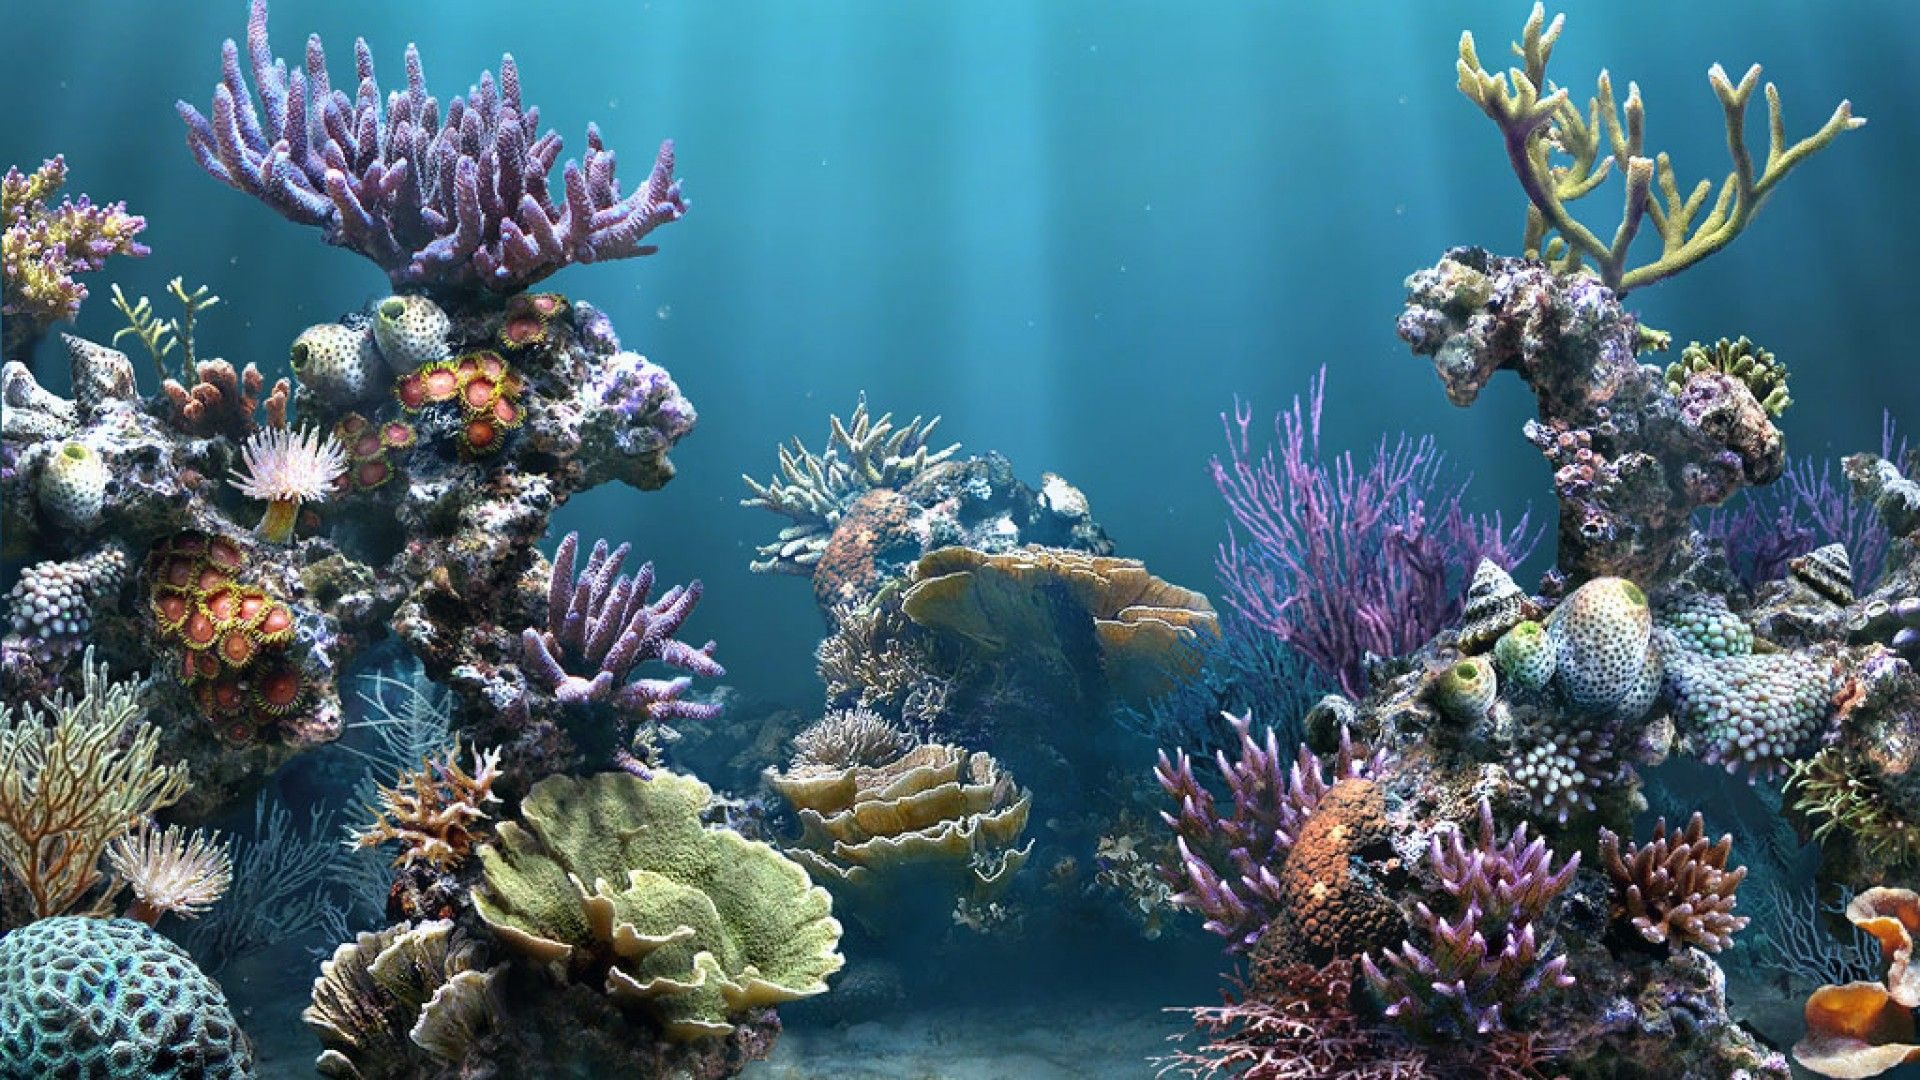 Aquarium Backgrounds Wallpaper 1920—1080 Aquarium Wallpaper